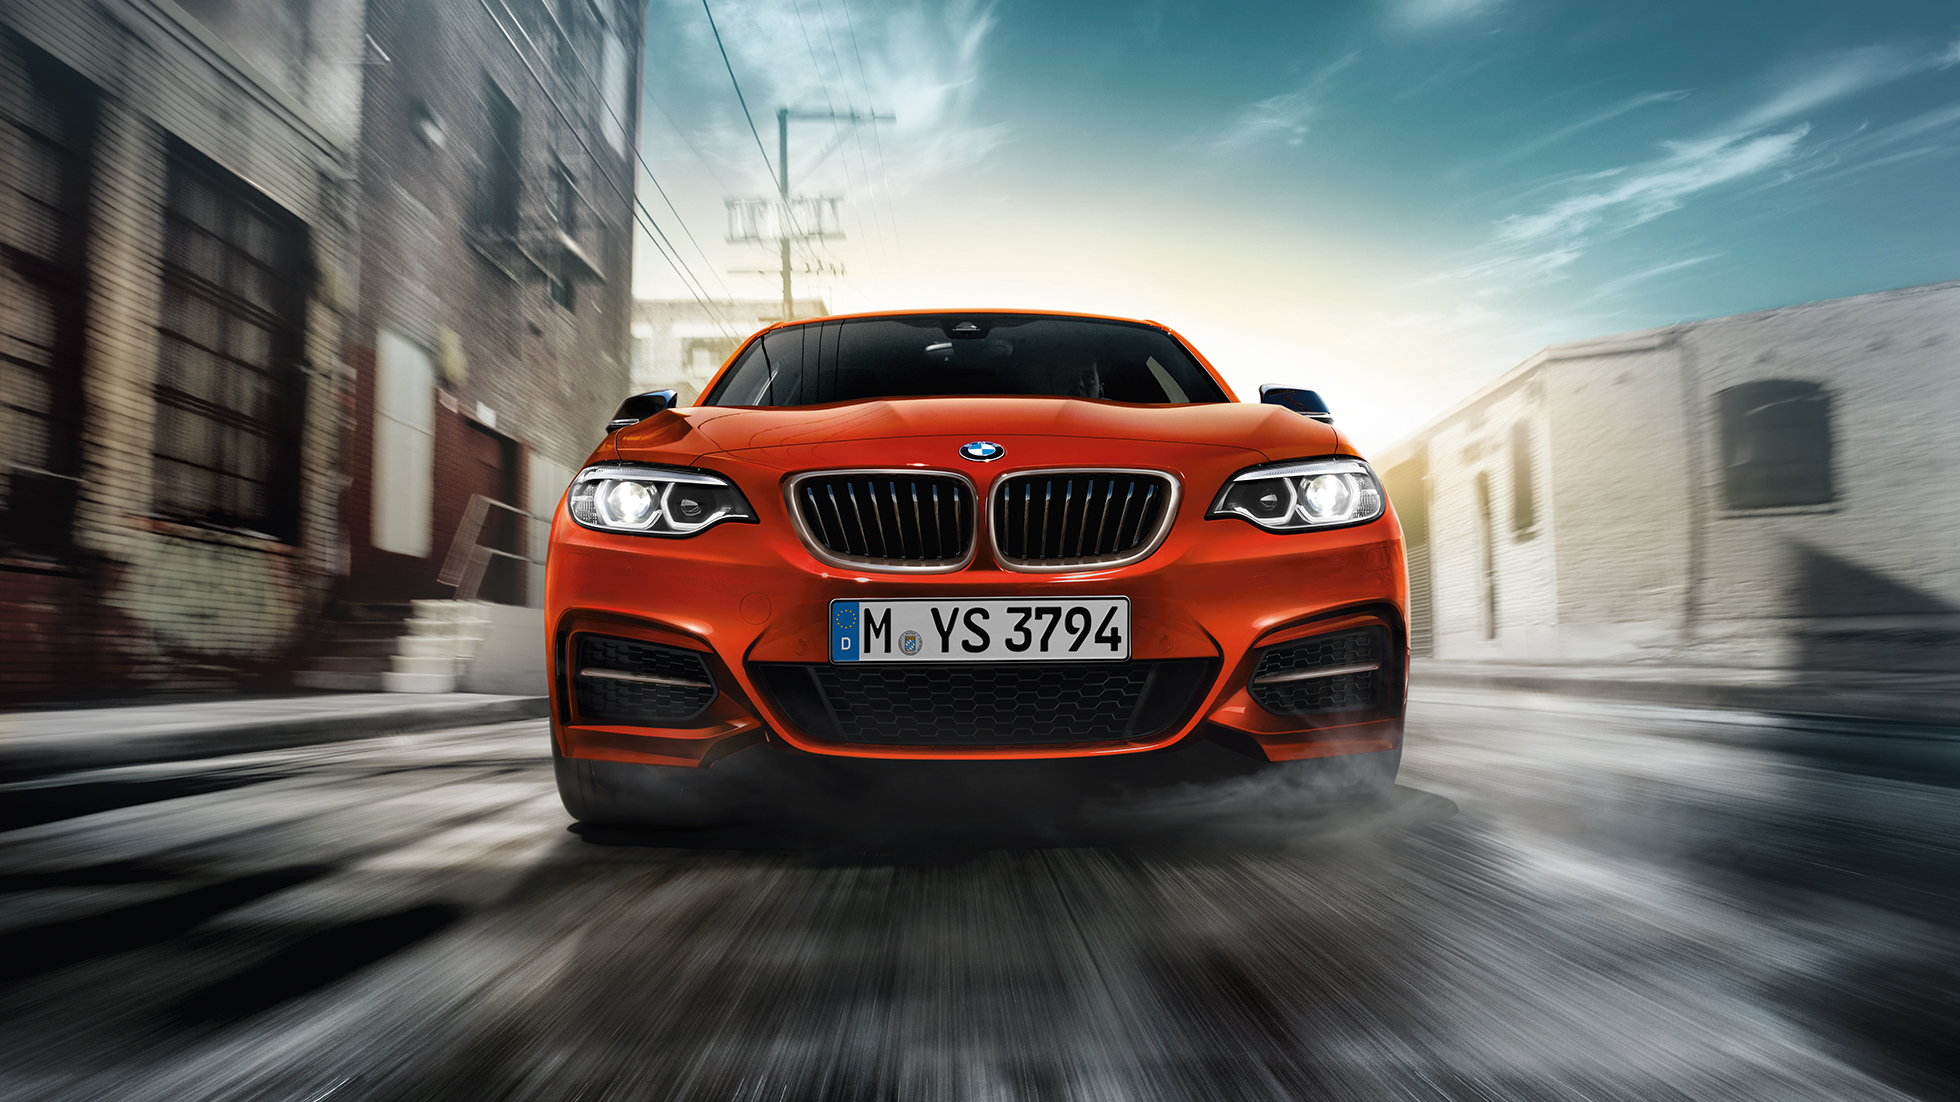 Frontdesign BMW M240i Coupé F22 2017 Sunset Orange metallic Frontansicht